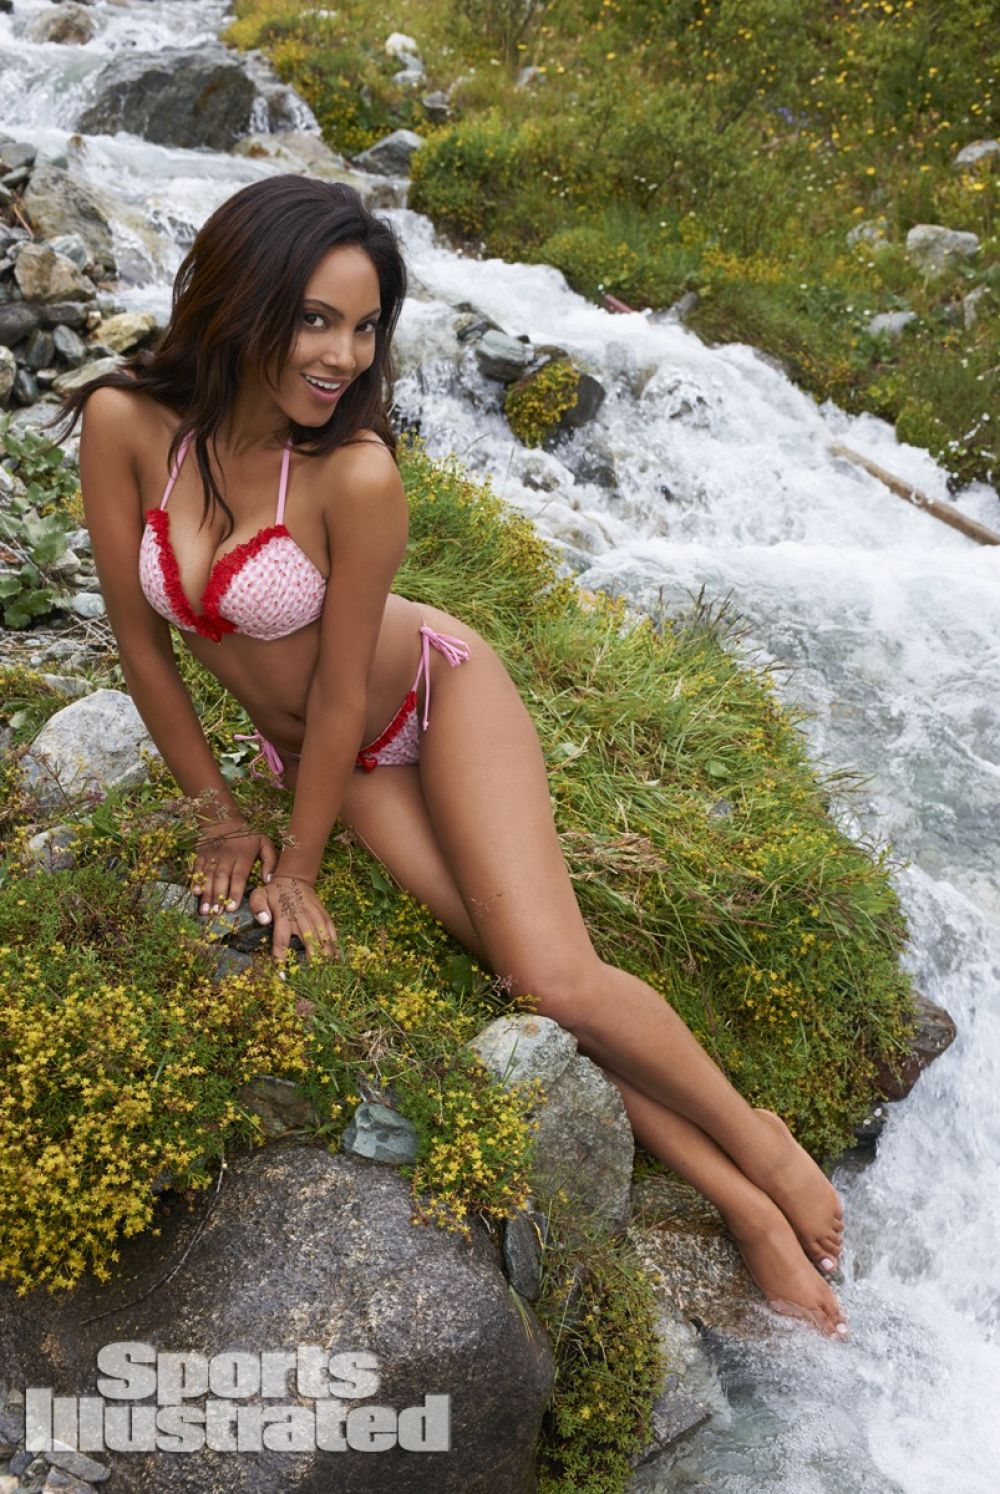 ariel-meredith-in-sports-illustrated-2014-swimsuit-issue_9.jpg - 315.40 KB